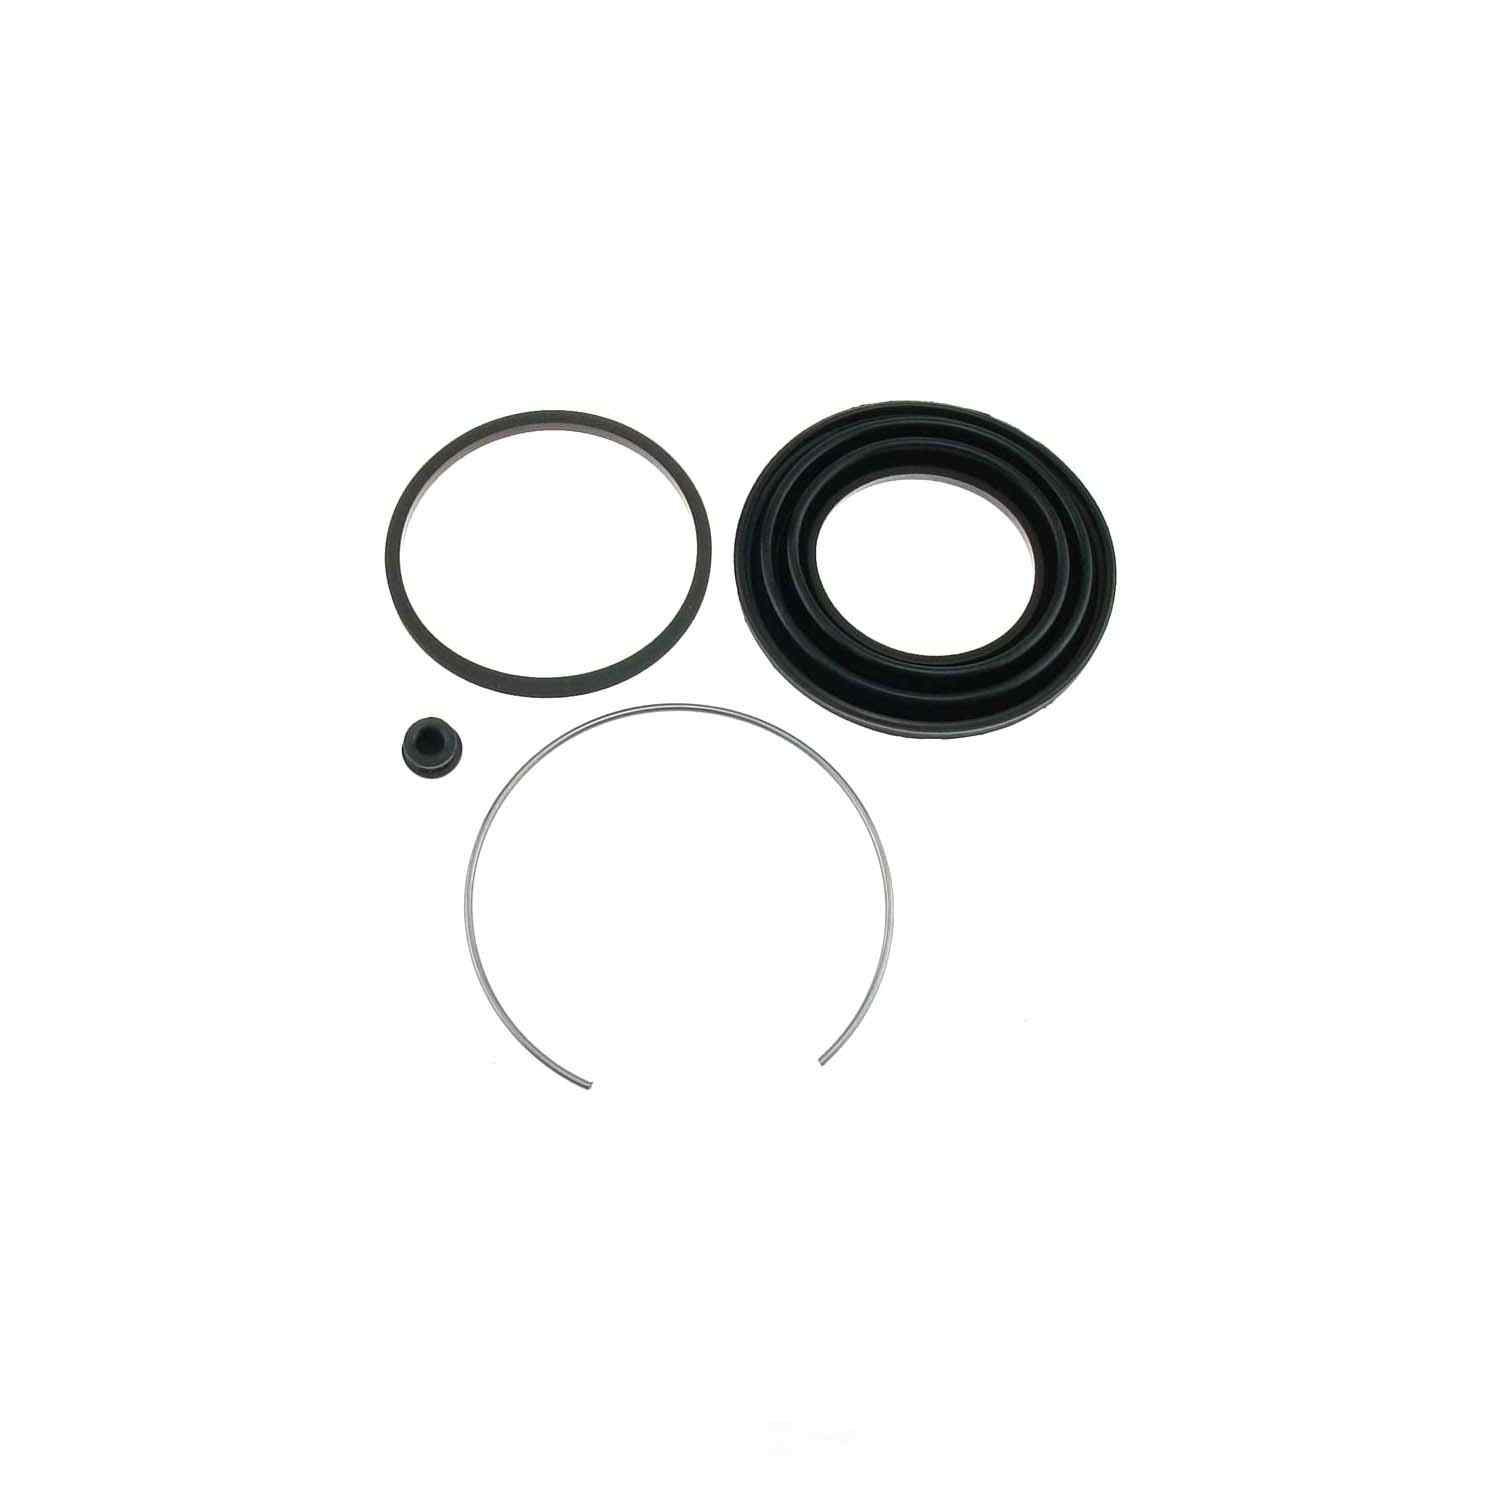 CARLSON QUALITY BRAKE PARTS - Disc Brake Caliper Repair Kit (Front) - CRL 15283